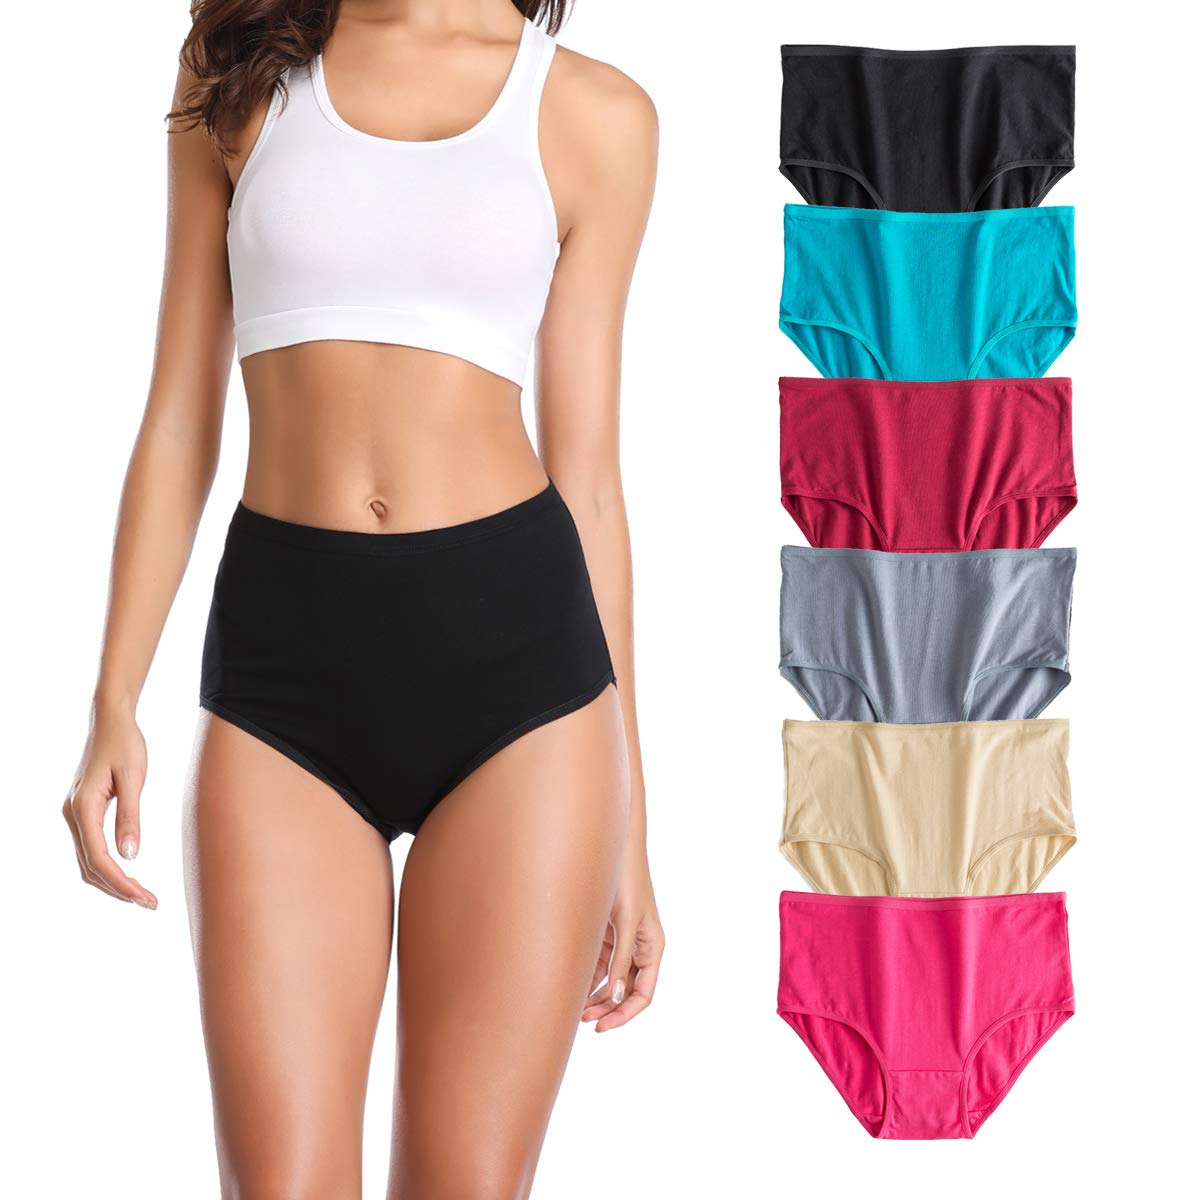 0c01a3c6a6fc ????95% cotton,5% spandex,Plus Size Panties for women. ????Imported  ????Cotton Underwear:Those women underwear are made from eco-friendly soft  stretchy ...